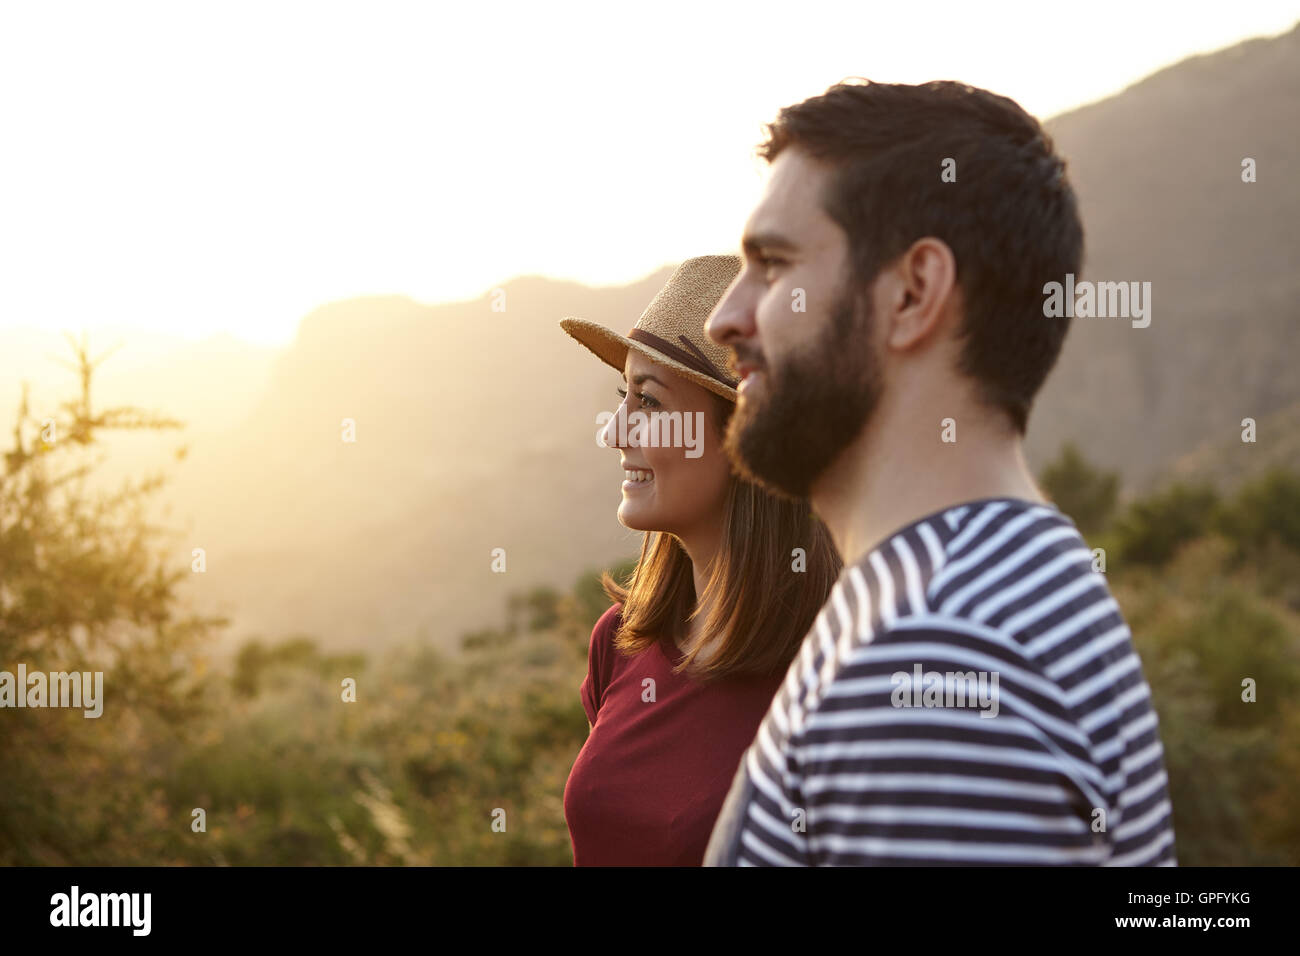 Young couple looking out surrounded by bushes and very bright sun to their left wearing t-shirts and a straw hat - Stock Image